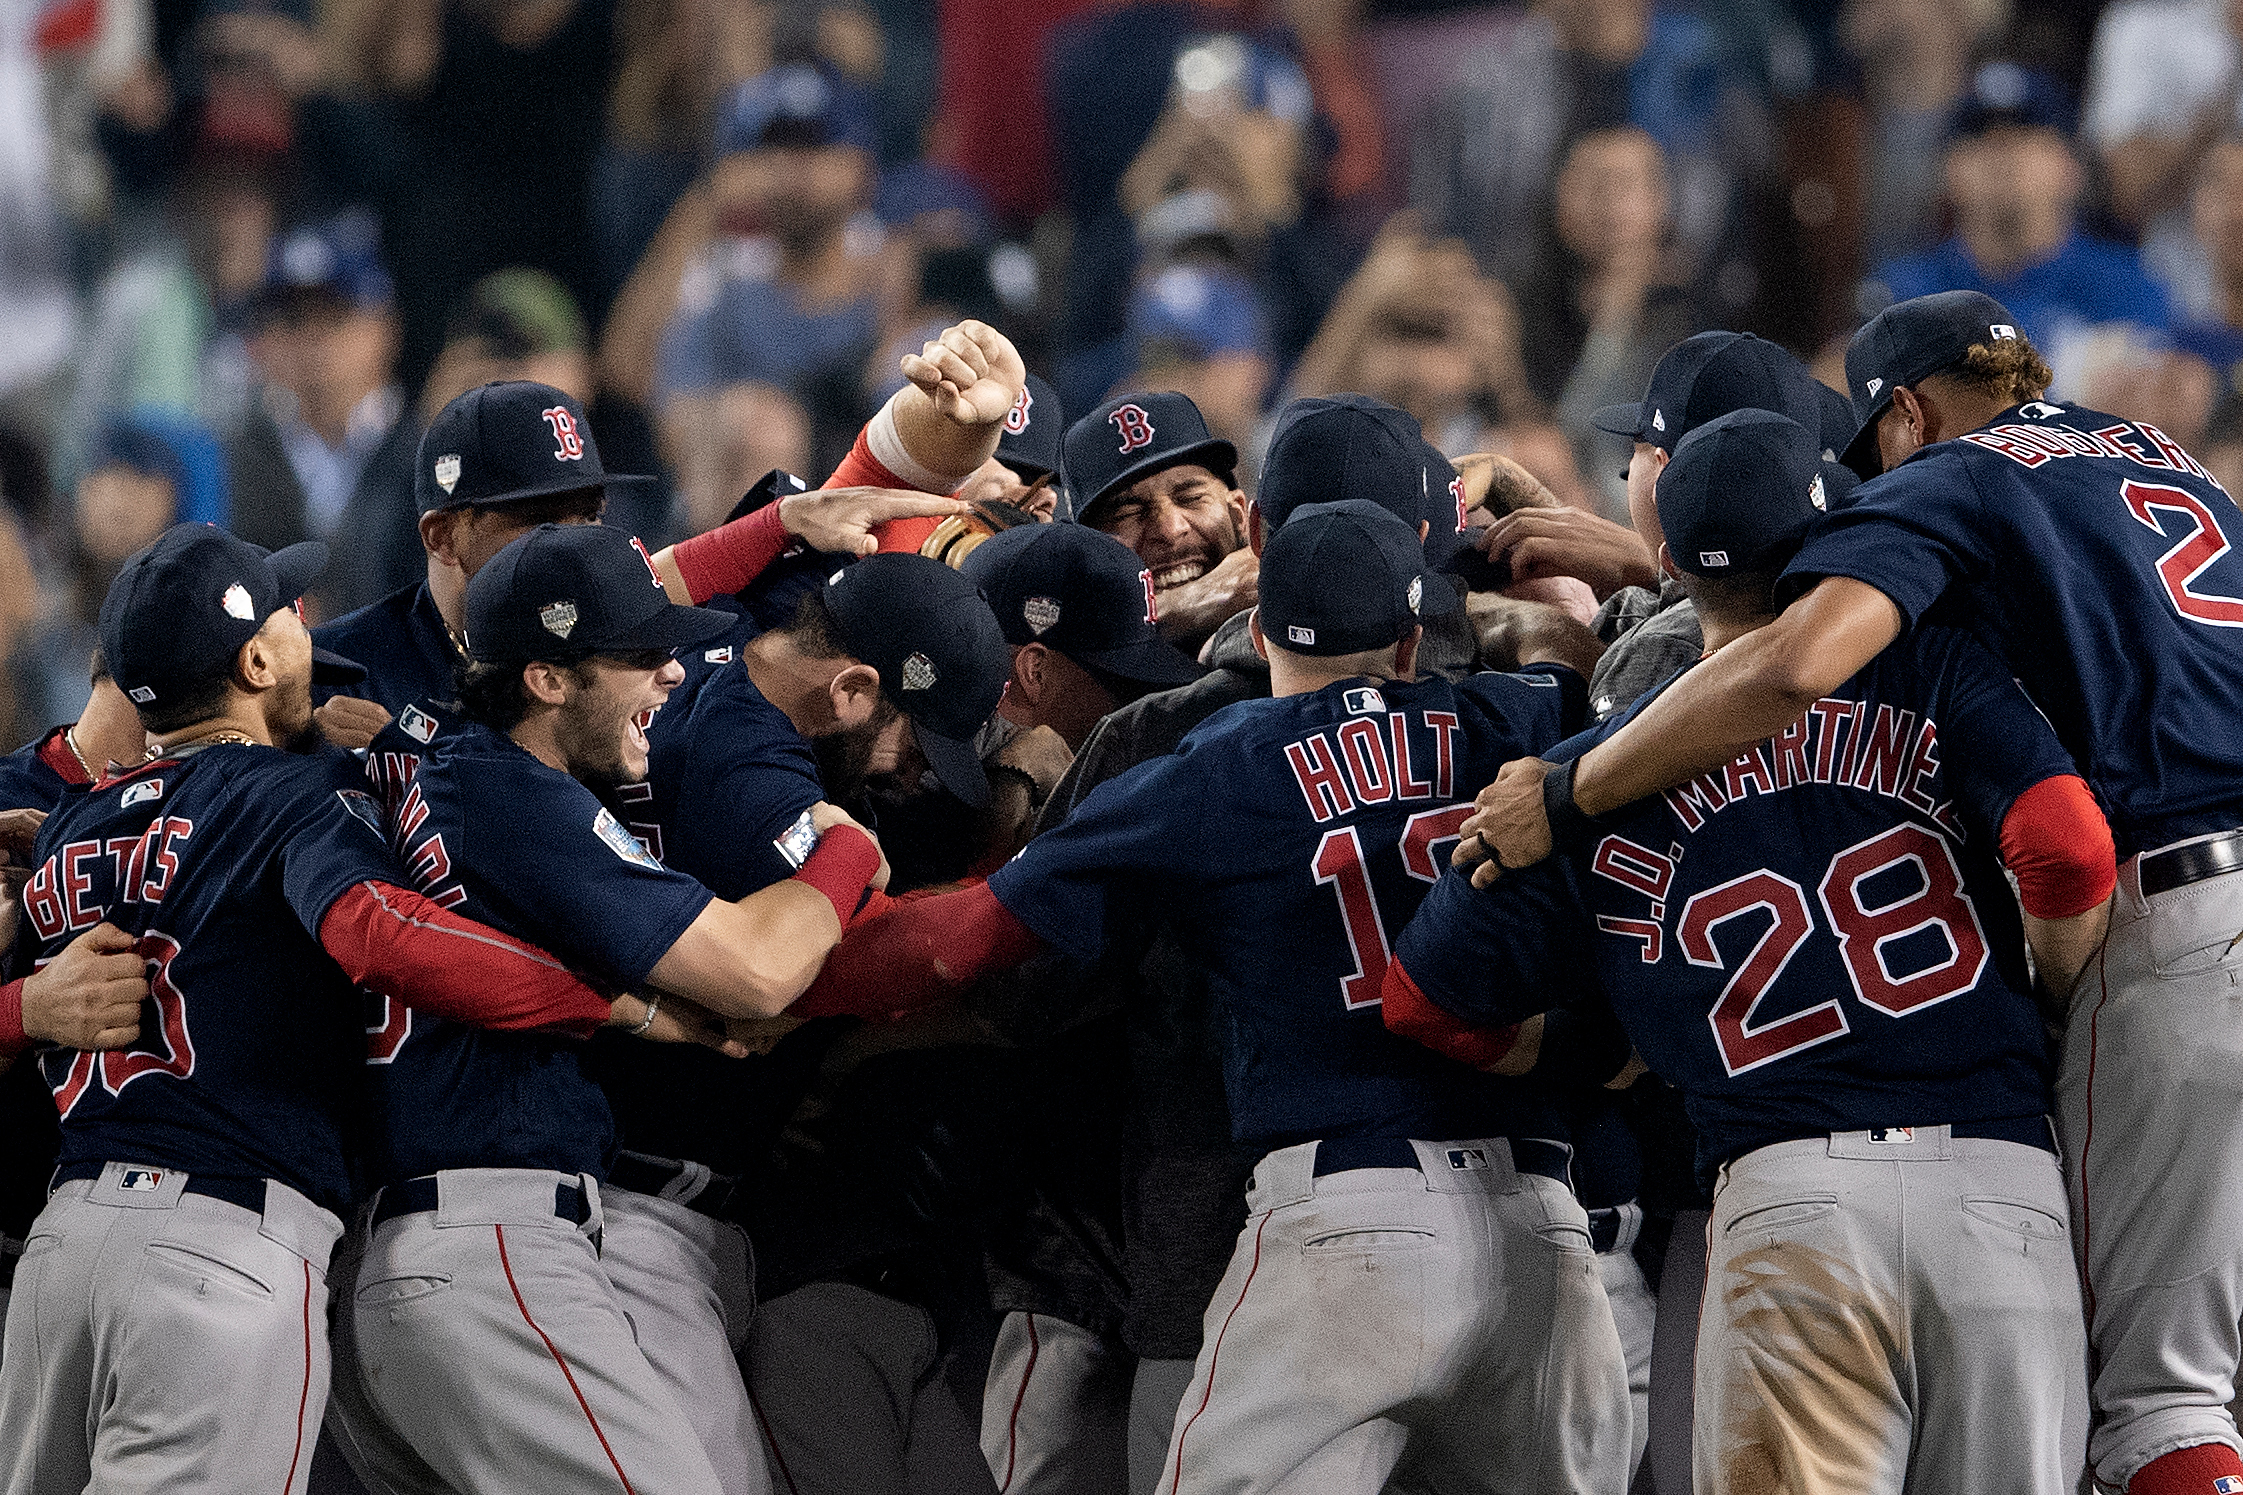 Members of the Boston Red Sox react after the final out was recorded to win the 2018 World Series in game five against the Los Angeles Dodgers at Dodger Stadium on Sunday, October 28, 2018.